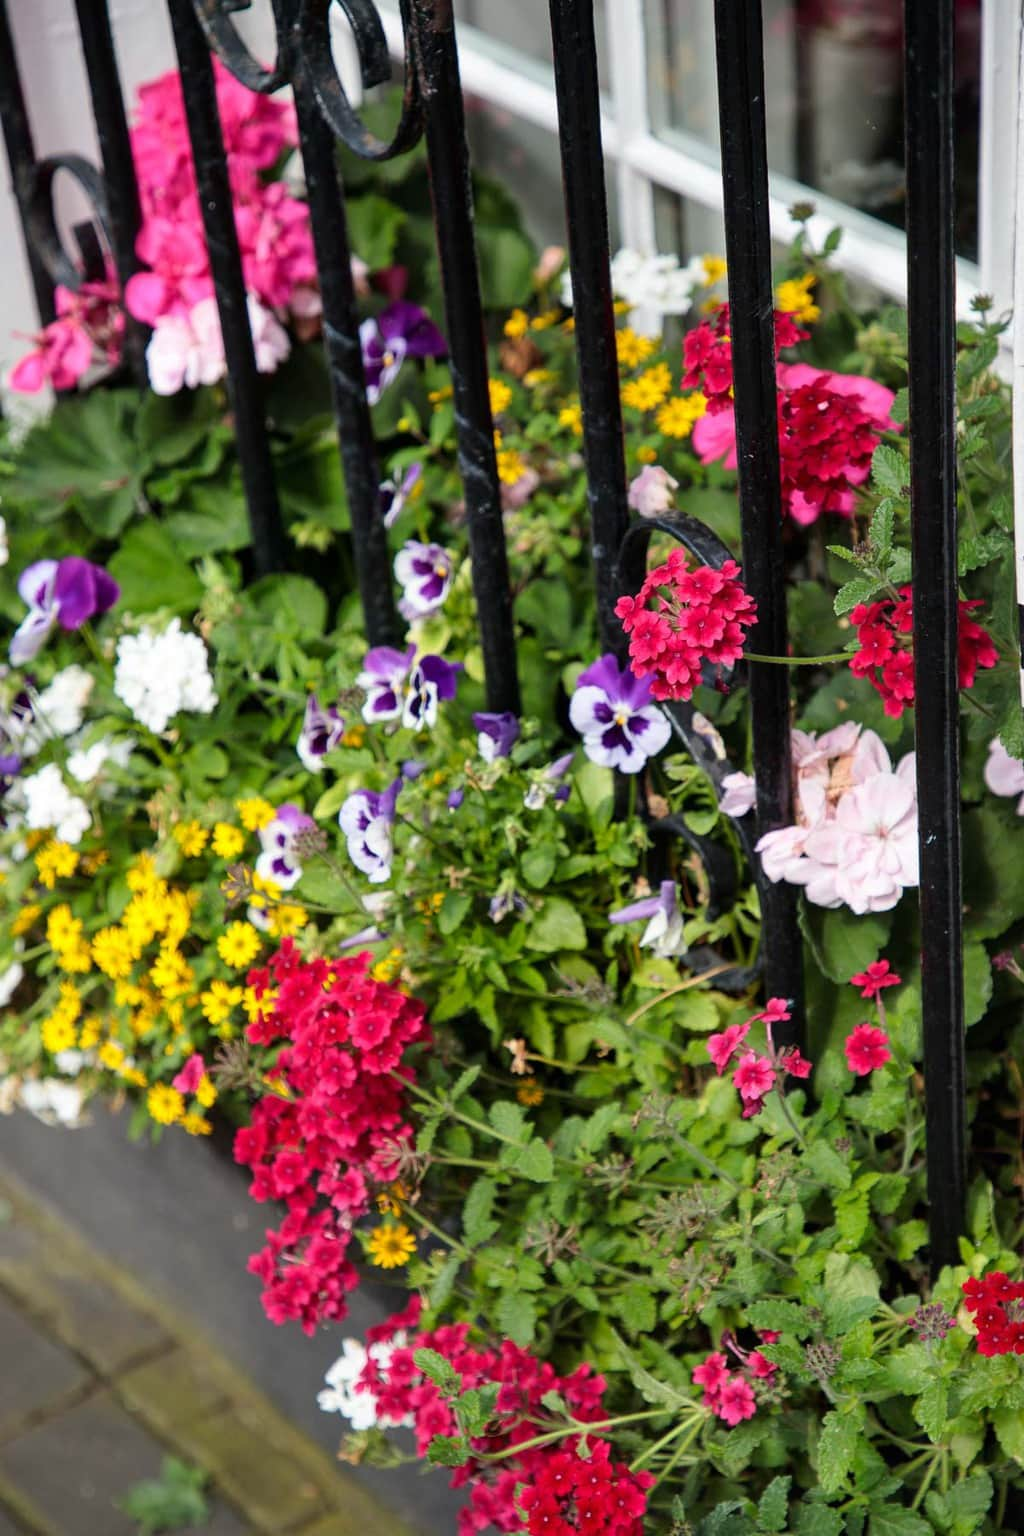 Photo of flowers in a front yard of a home in Malahide, Ireland.